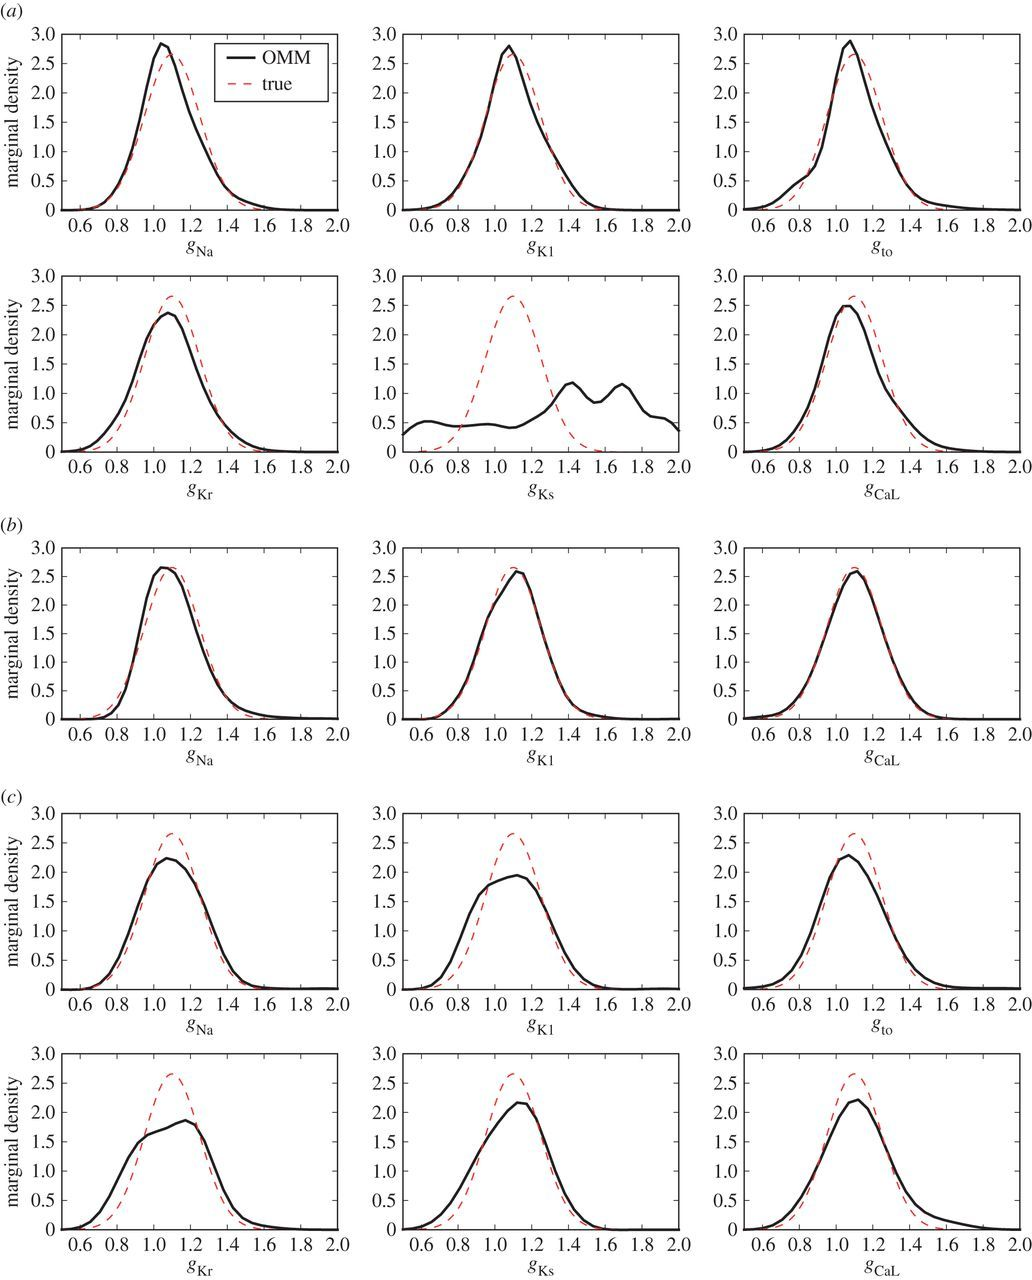 Modelling variability in cardiac electrophysiology: a moment